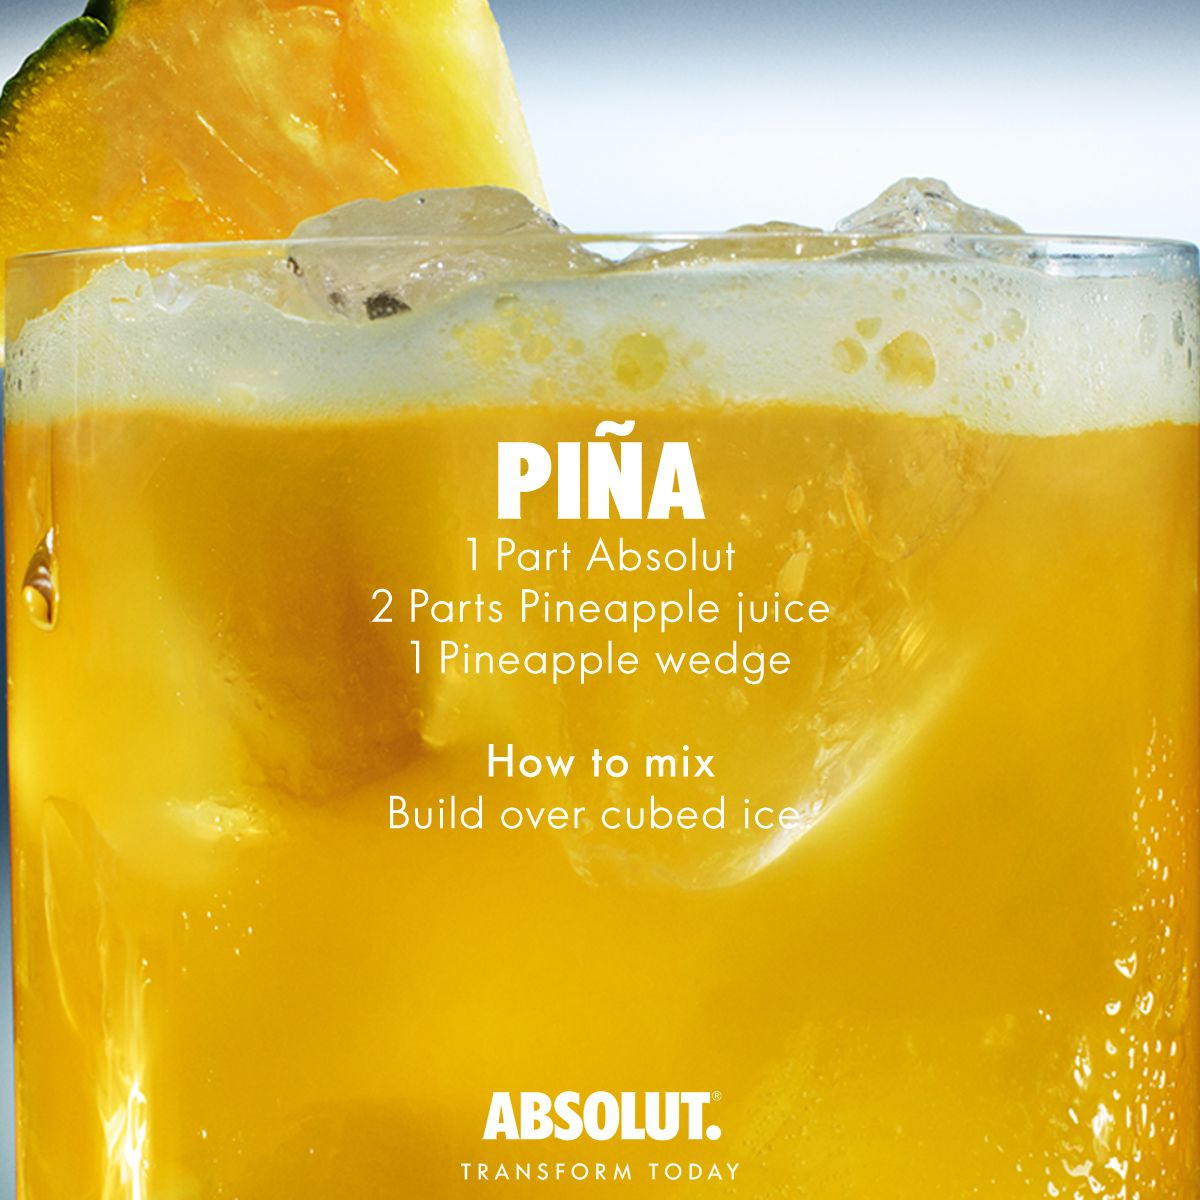 Vodka And Pineapple Juice Drinks  Cocktail Recipes Pina 1 Part Absolut Vodka 2 Parts